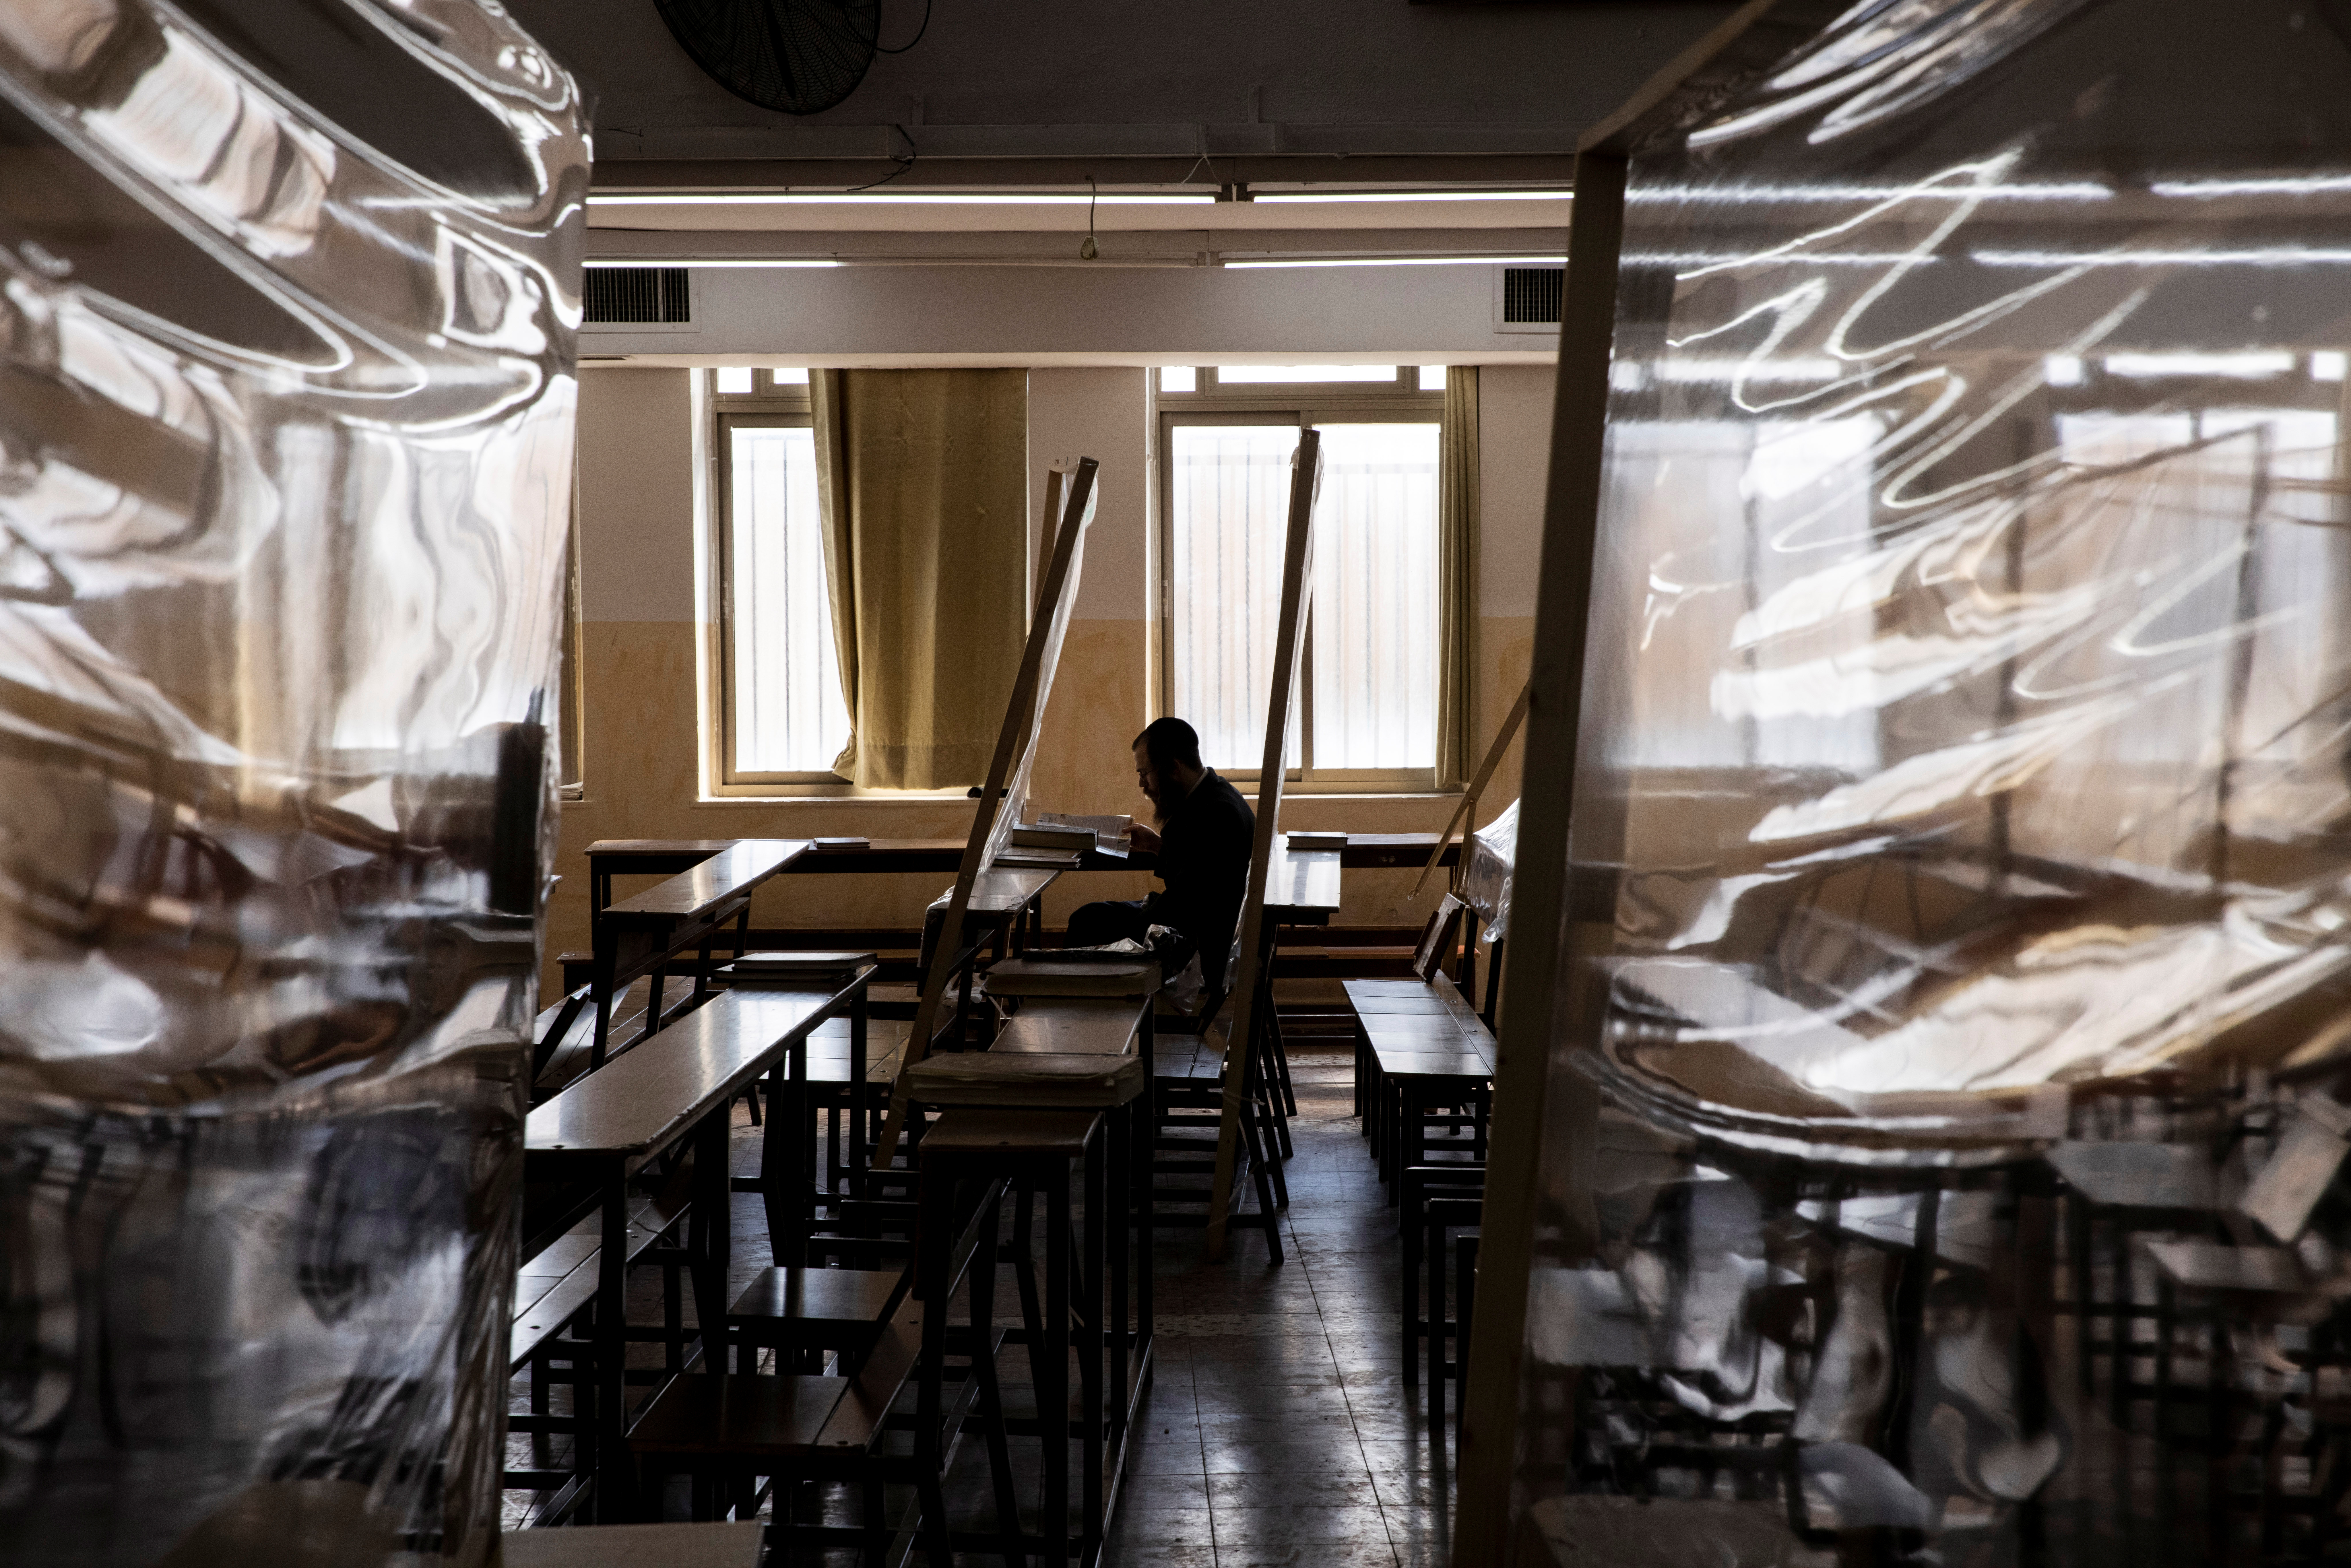 An ultra-Orthodox Jewish man studies in a Yeshiva, or Jewish seminary, equipped with partitions to protect against the spread of the coronavirus disease (COVID-19), in the Mea Shearim neighbourhood of Jerusalem March 2, 2021. Picture taken March 2, 2021. REUTERS/Ronen Zvulun